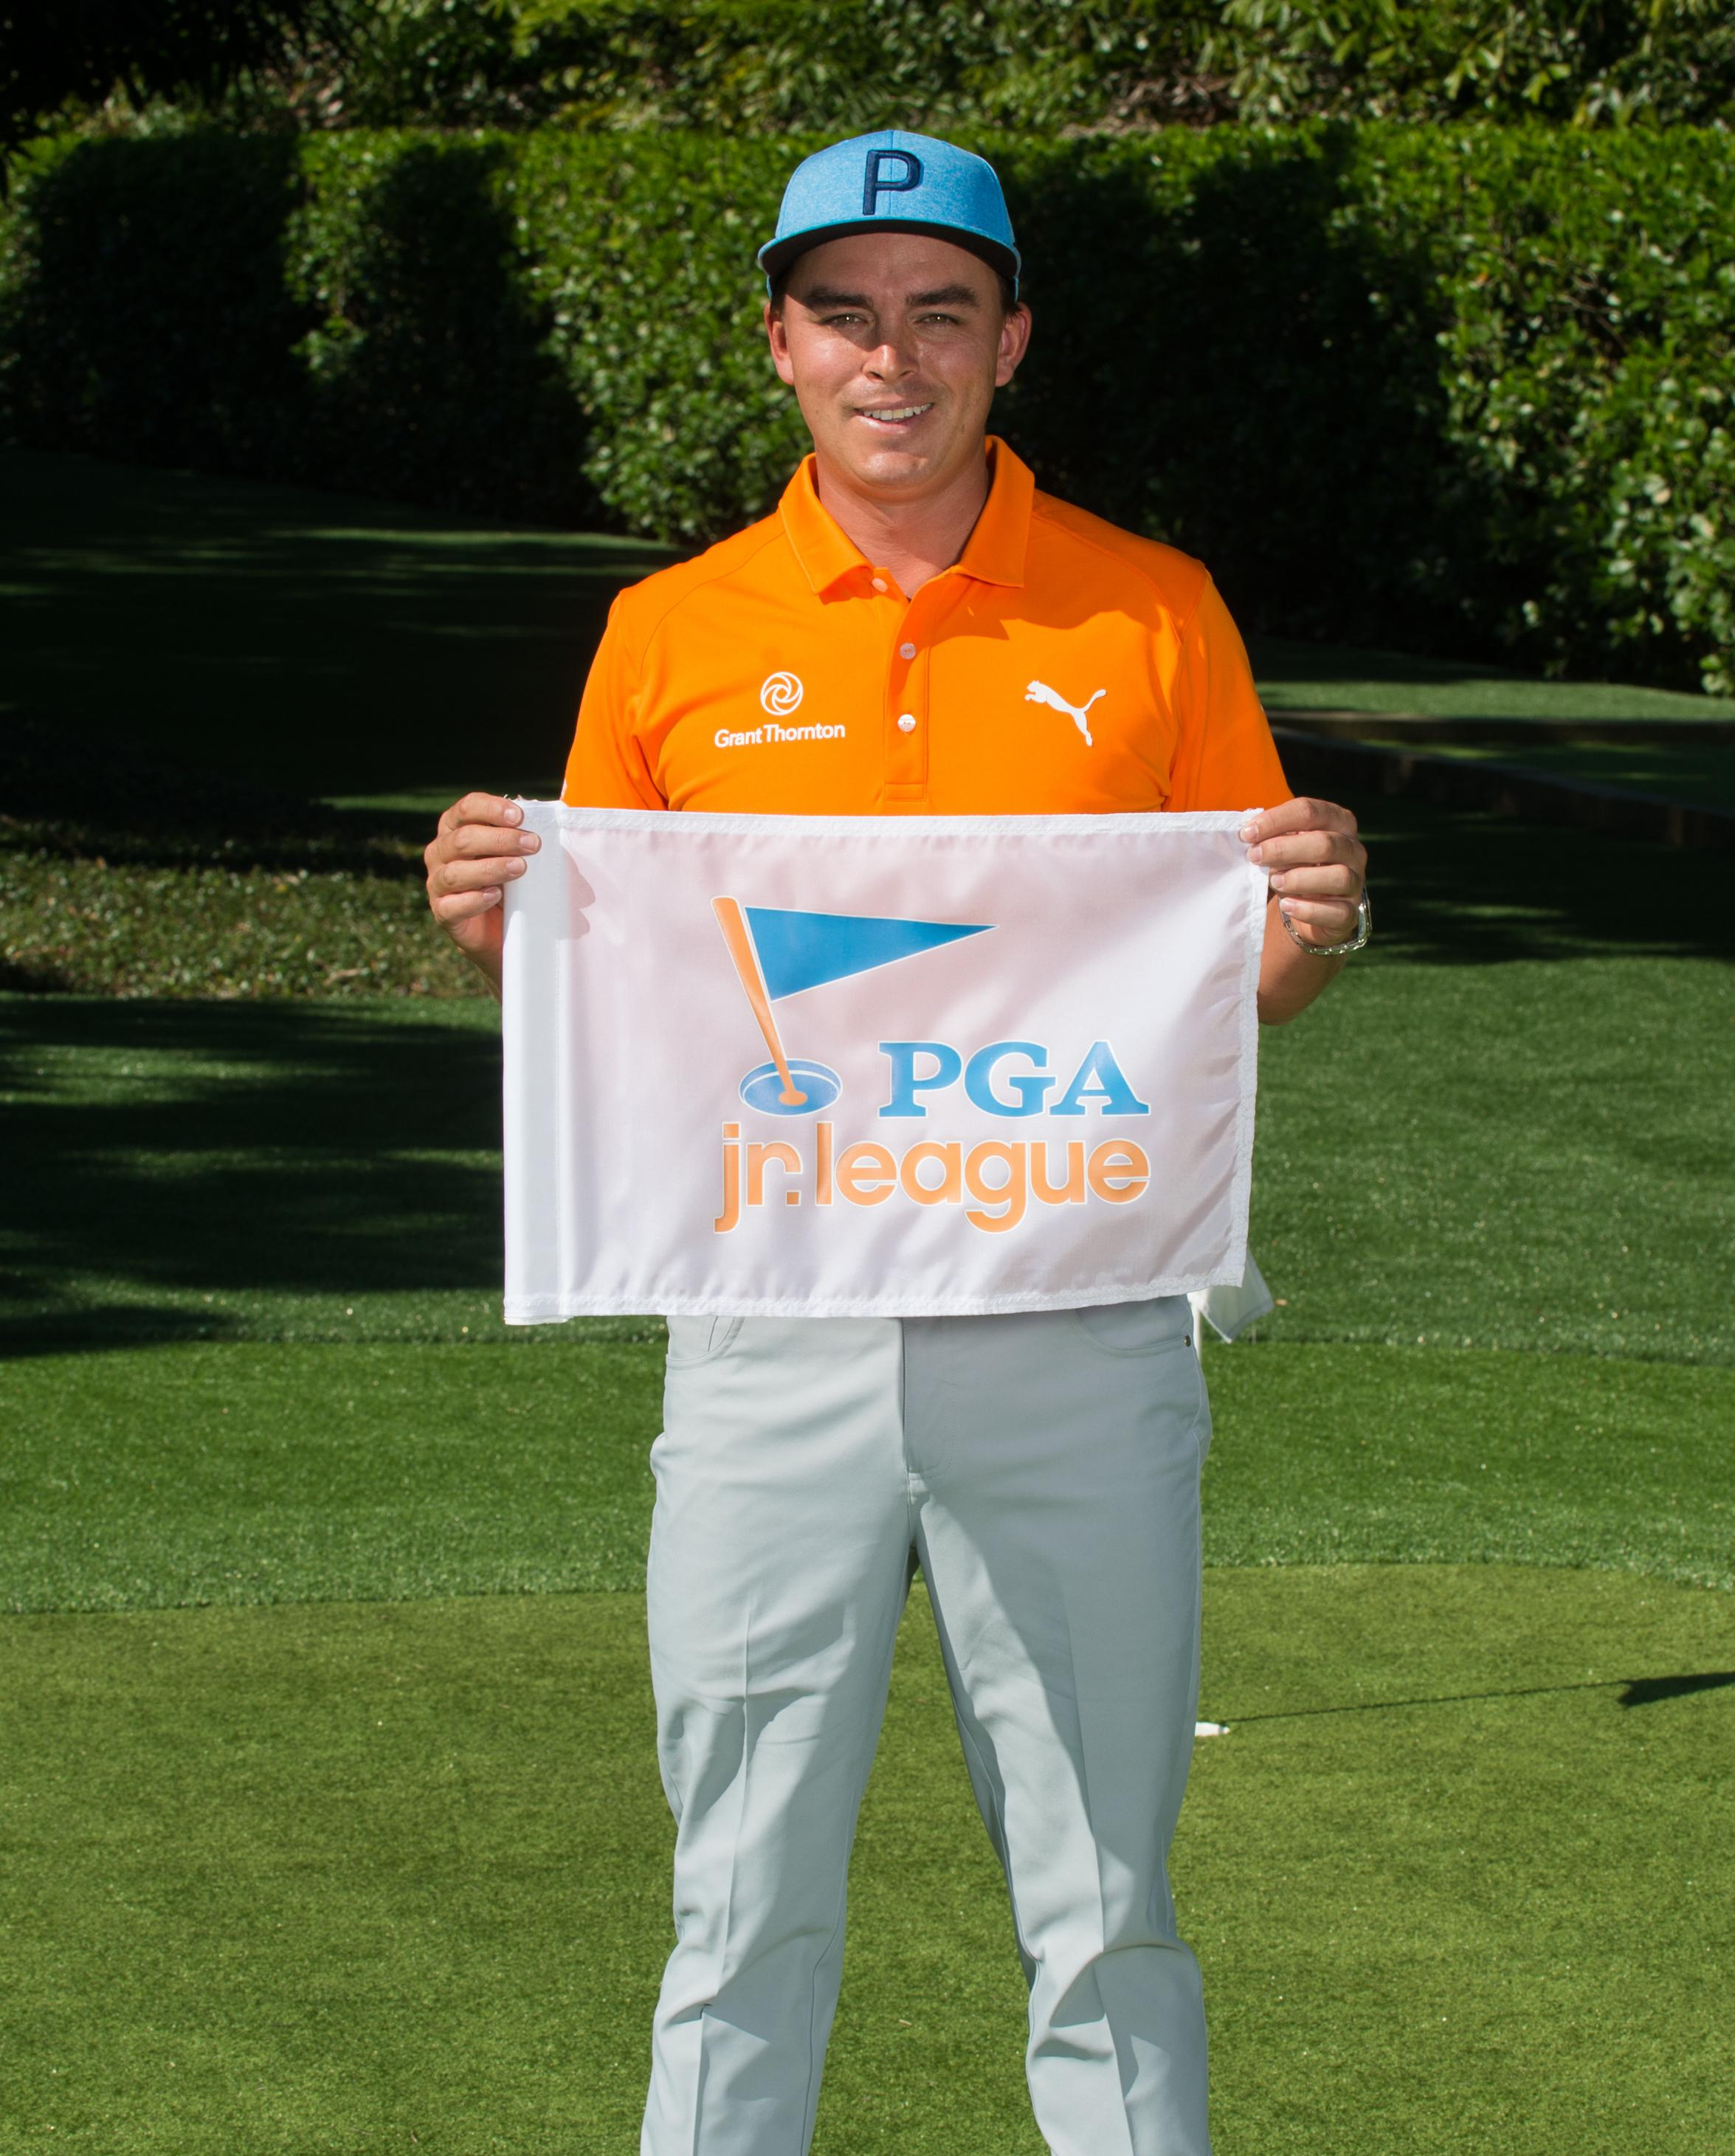 PGA Jr. League Ambassador Rickie Fowler